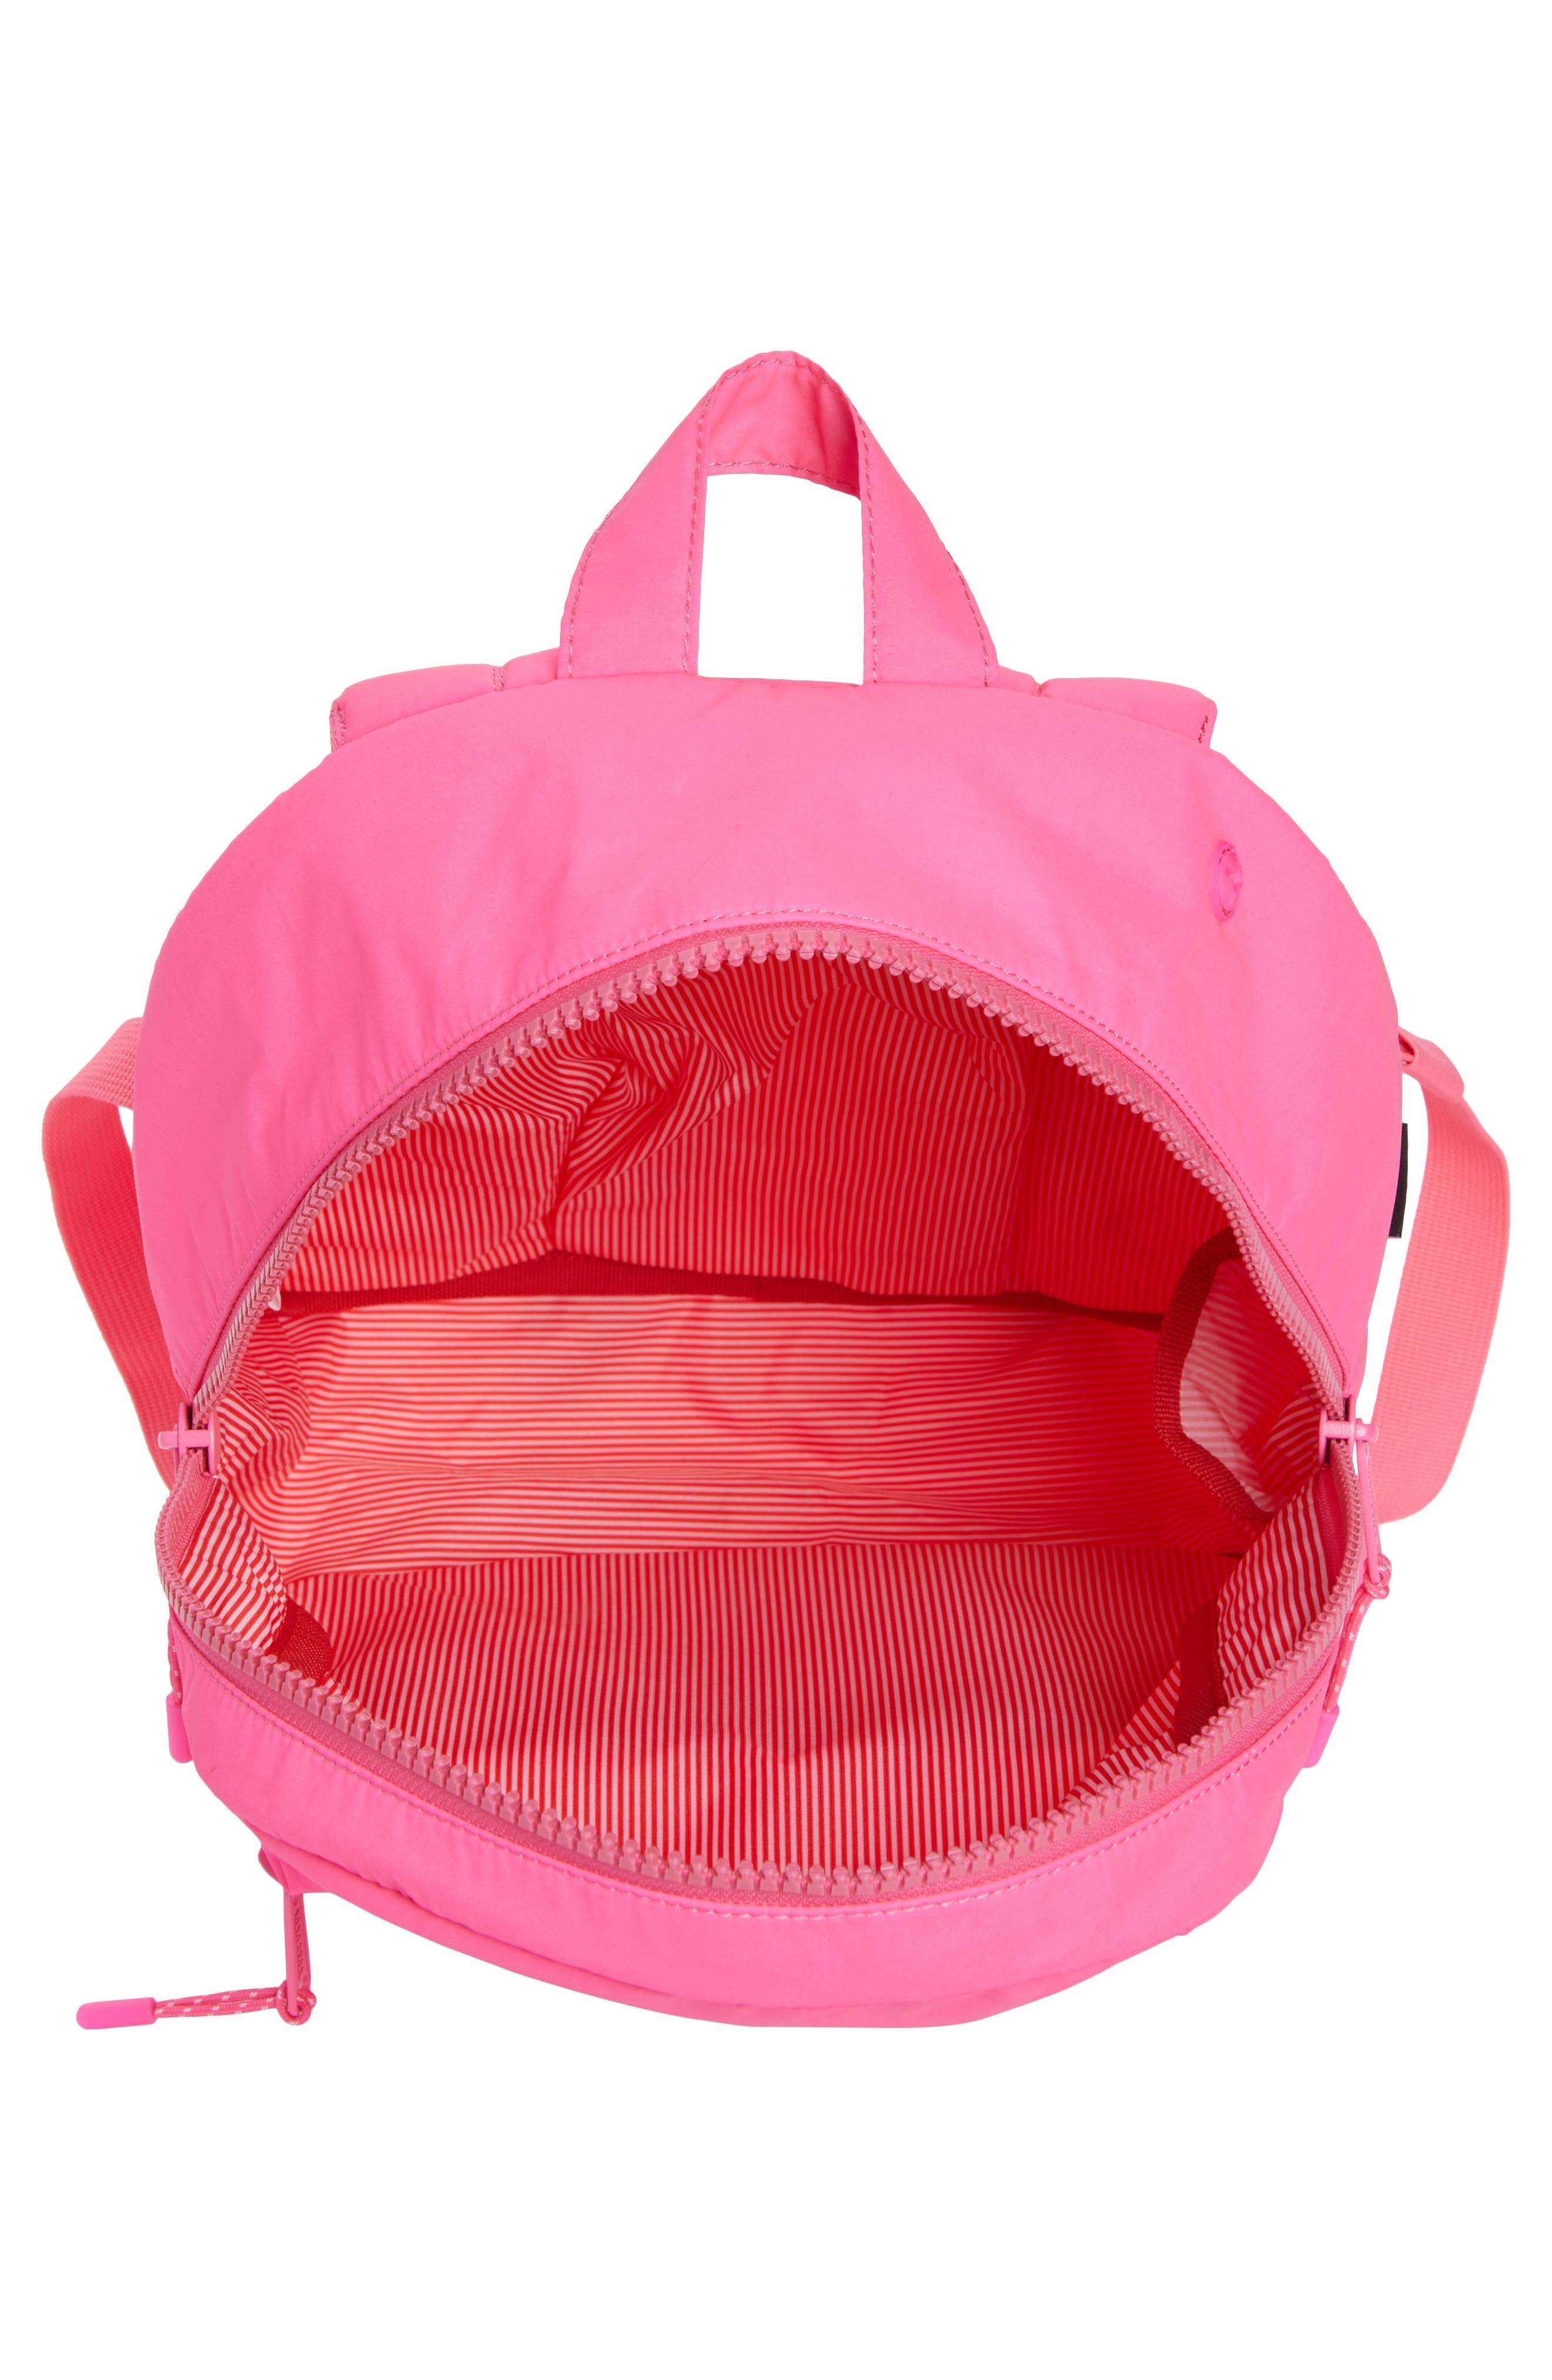 Heritage Backpack,                             Alternate thumbnail 5, color,                             Neon Pink Rubber